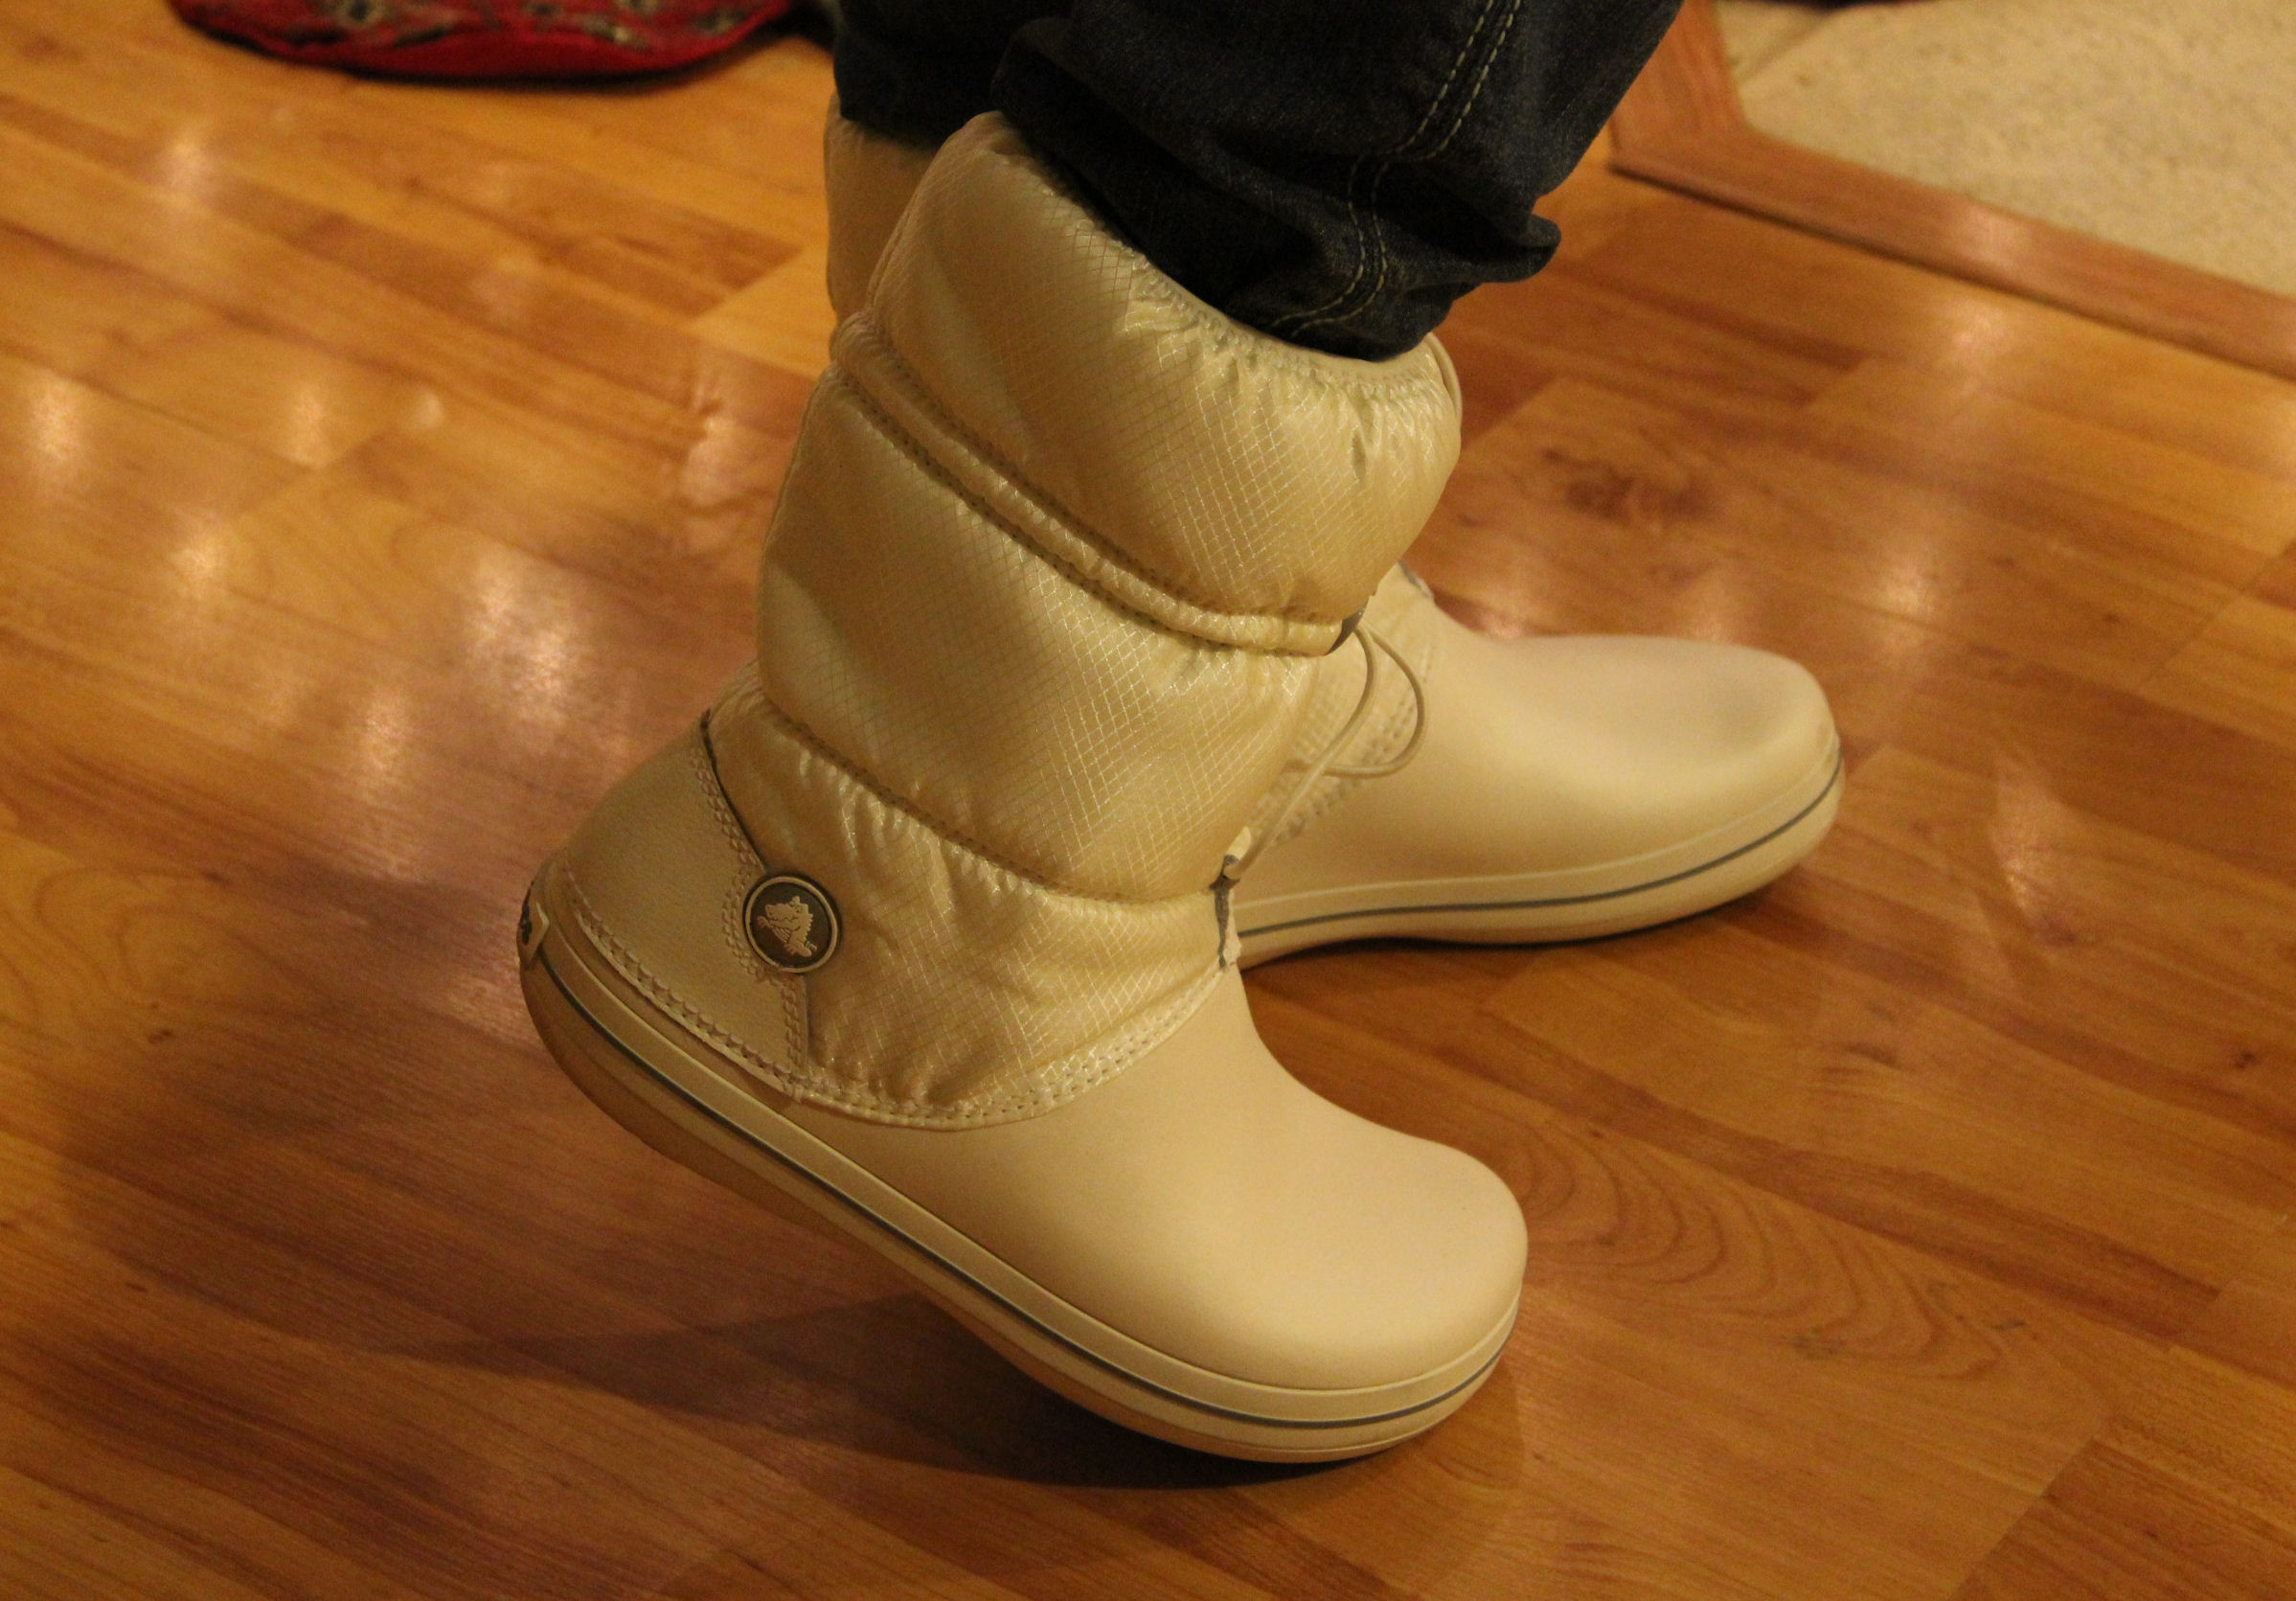 d58f2141fe62 Crocs Crocband Winter Boots Review and Giveaway (Closed)